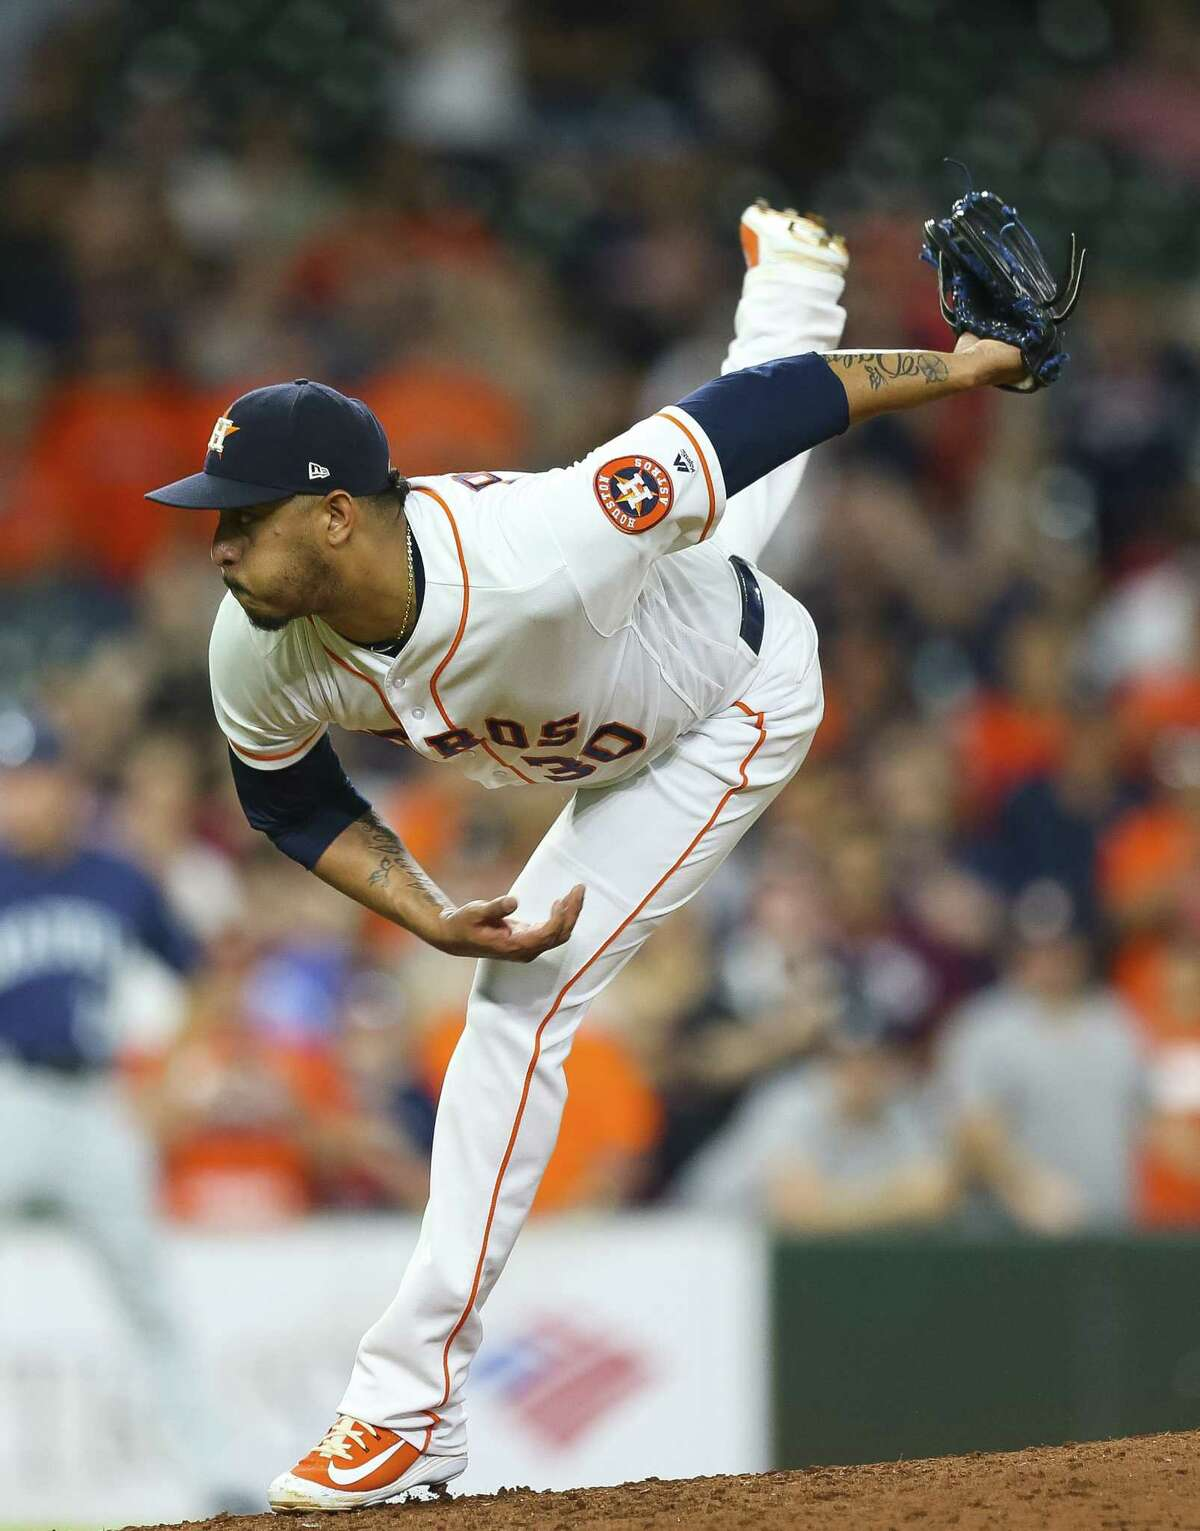 A bargain offseason signee who brought closing experience with the Cubs, Hector Rondon has a 1.50 ERA in 24 innings for the Astros this year and has saved three of their last five wins.